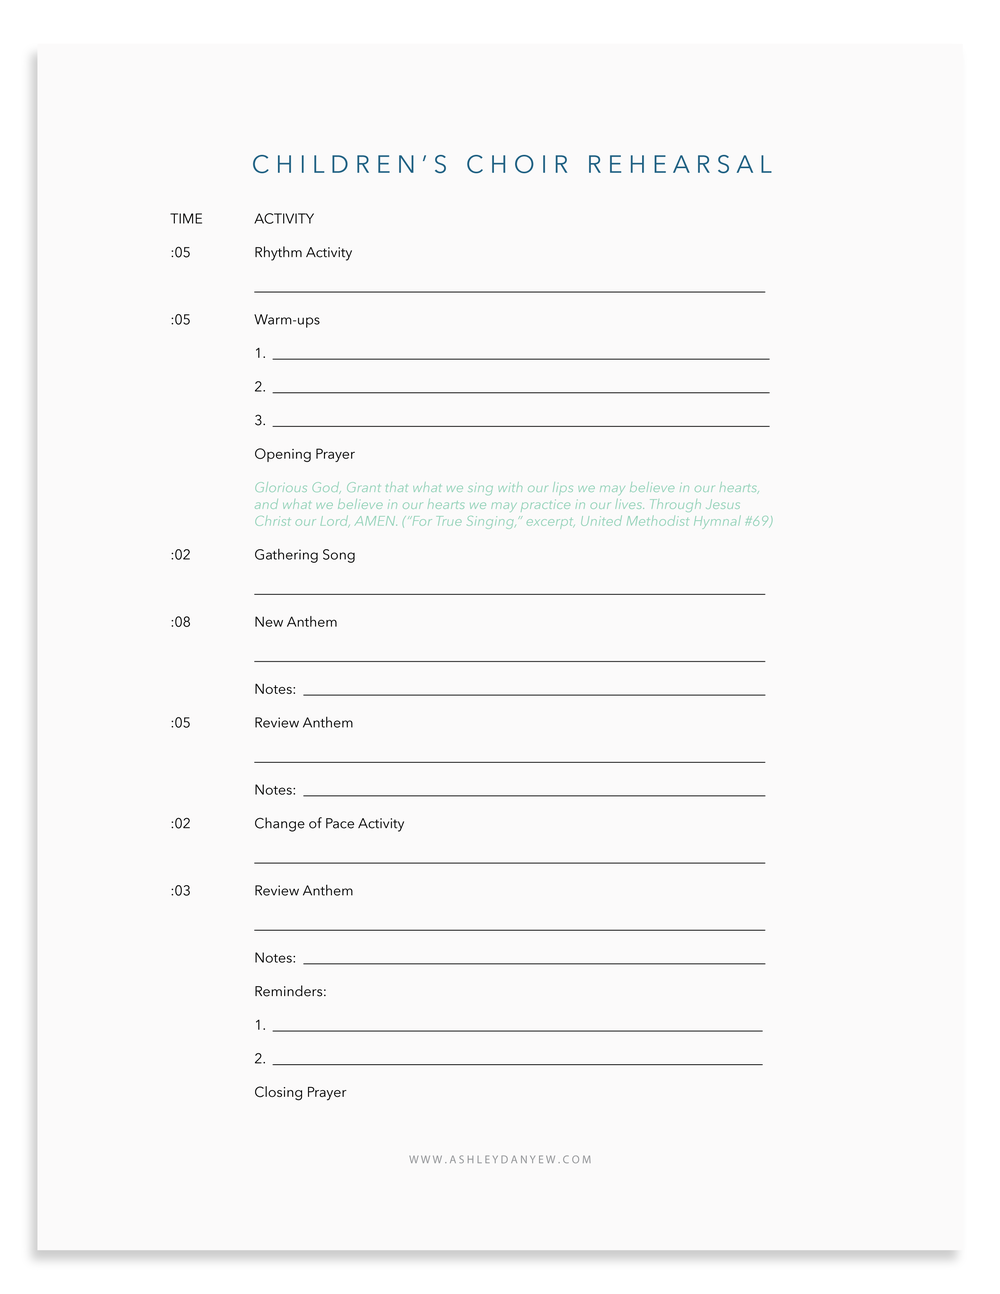 Children's Choir Rehearsal Plan Template.png